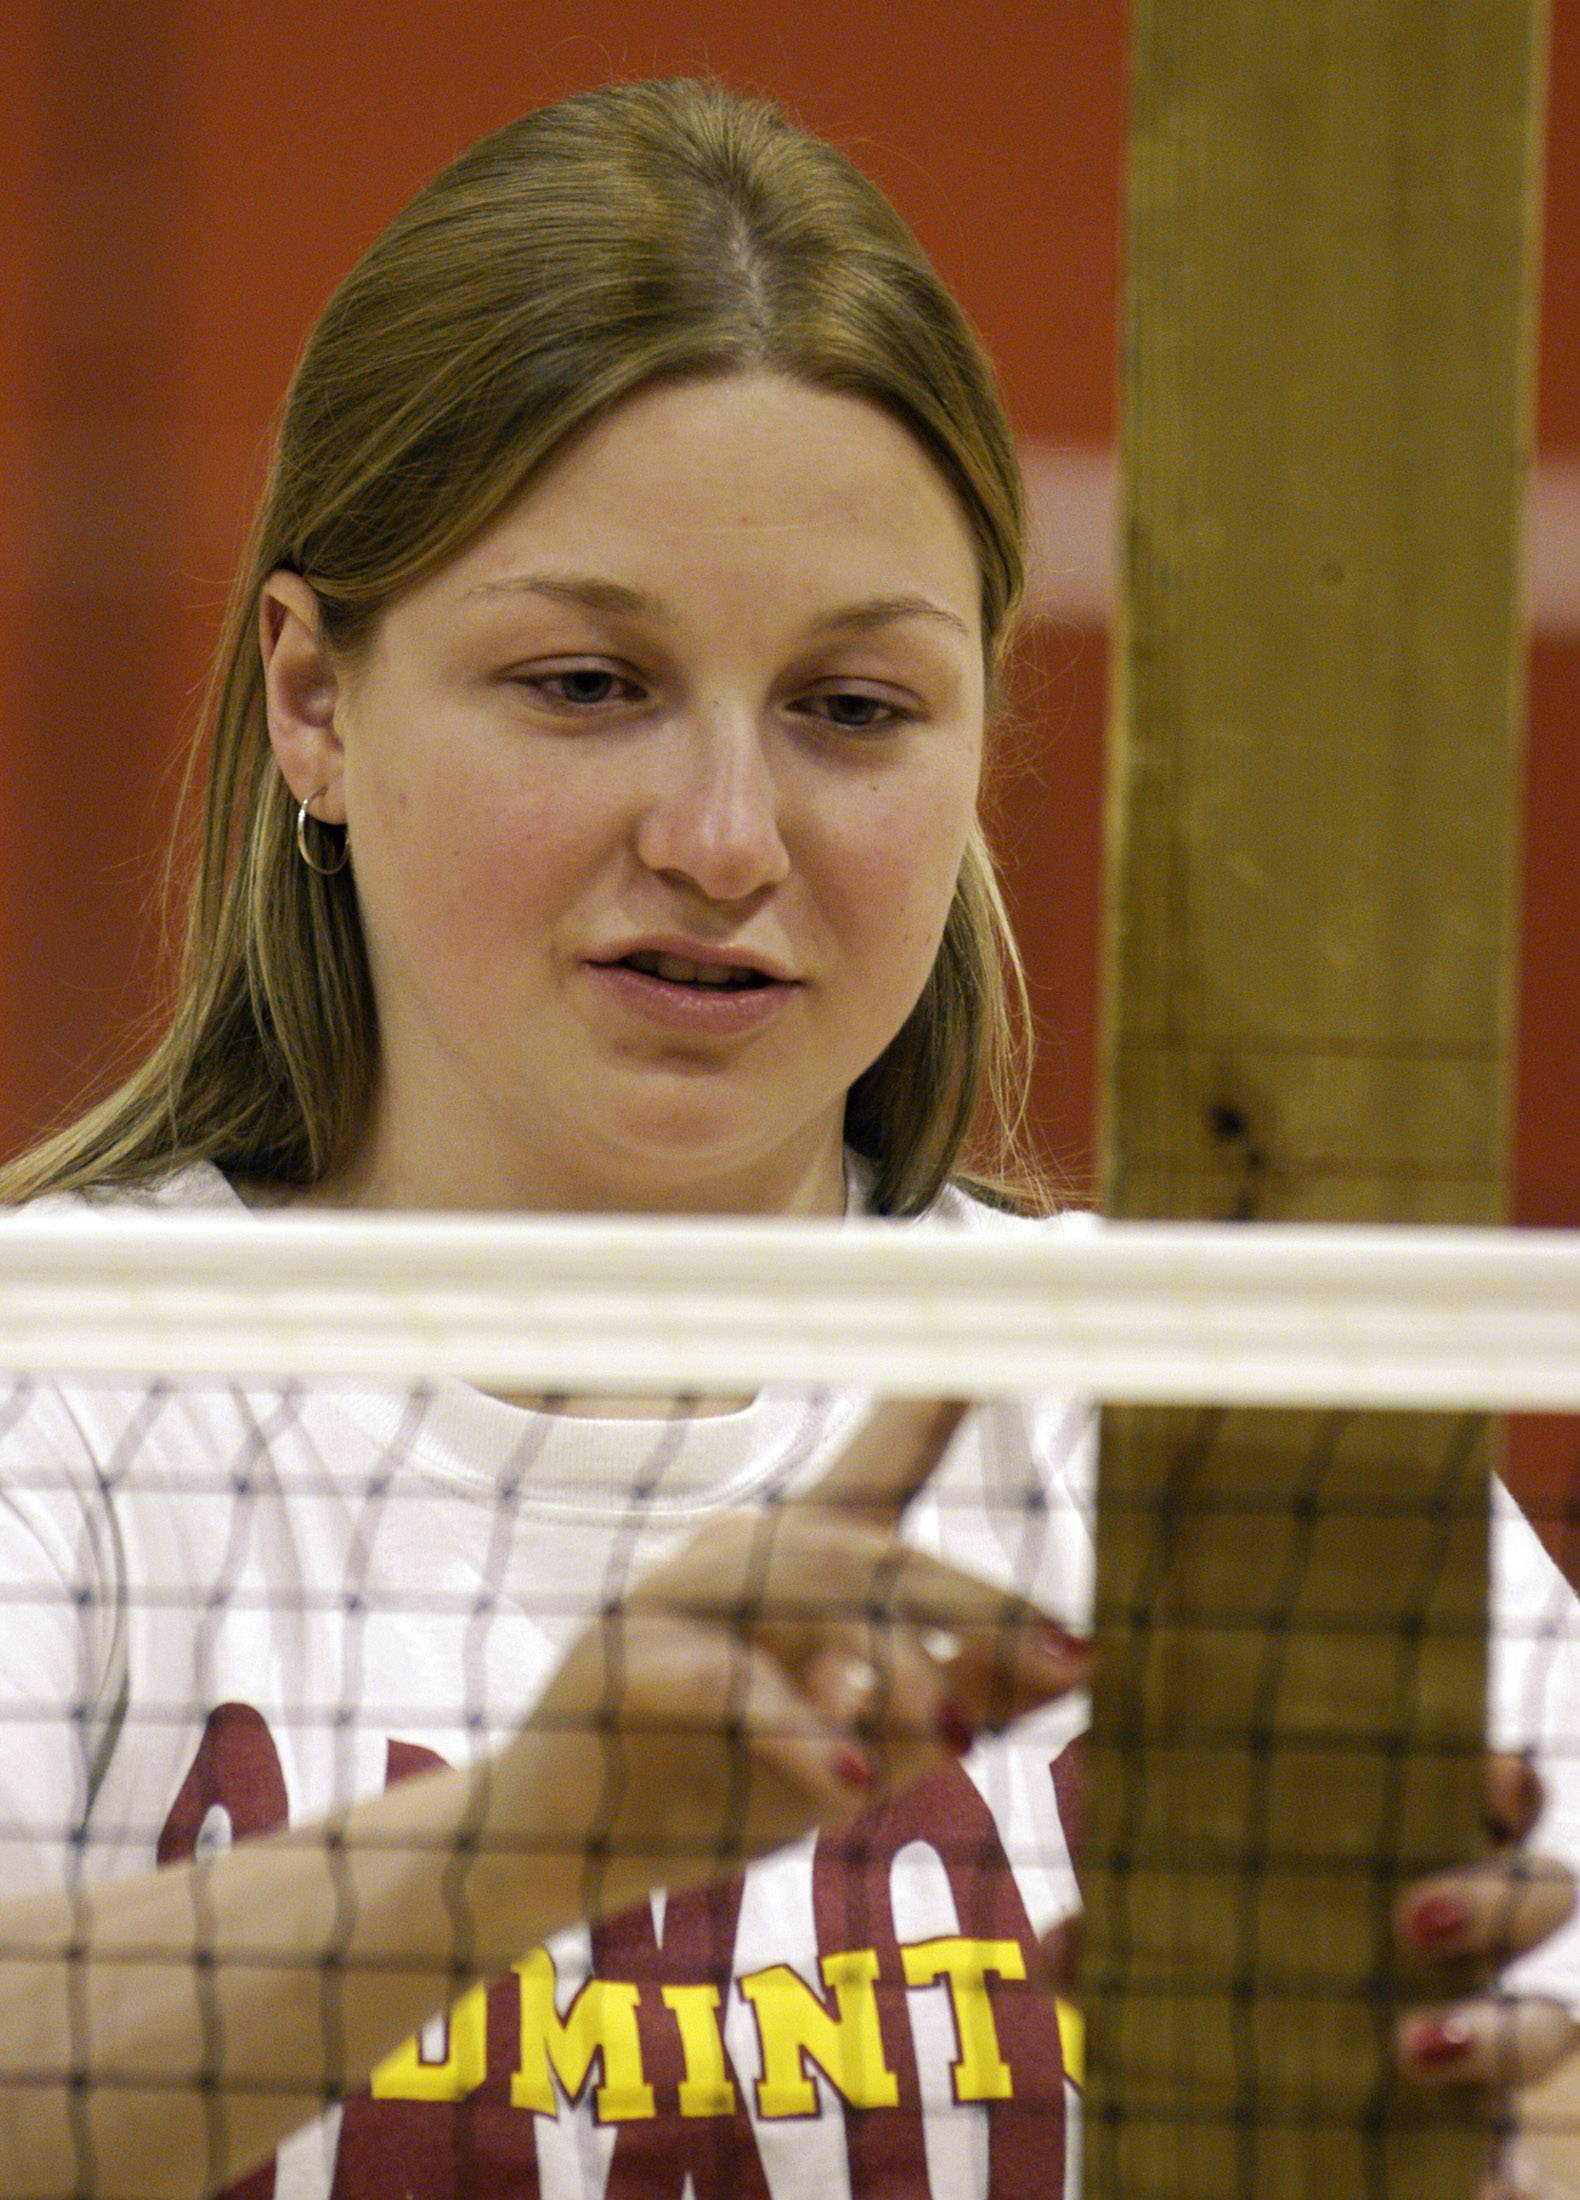 Joanna Sojka, a senior at Schaumburg High School in 2003 and a member of the school's badminton team, checks the height of the net. She was valedictorian of her class and named to the Daily Herald Academic Team.